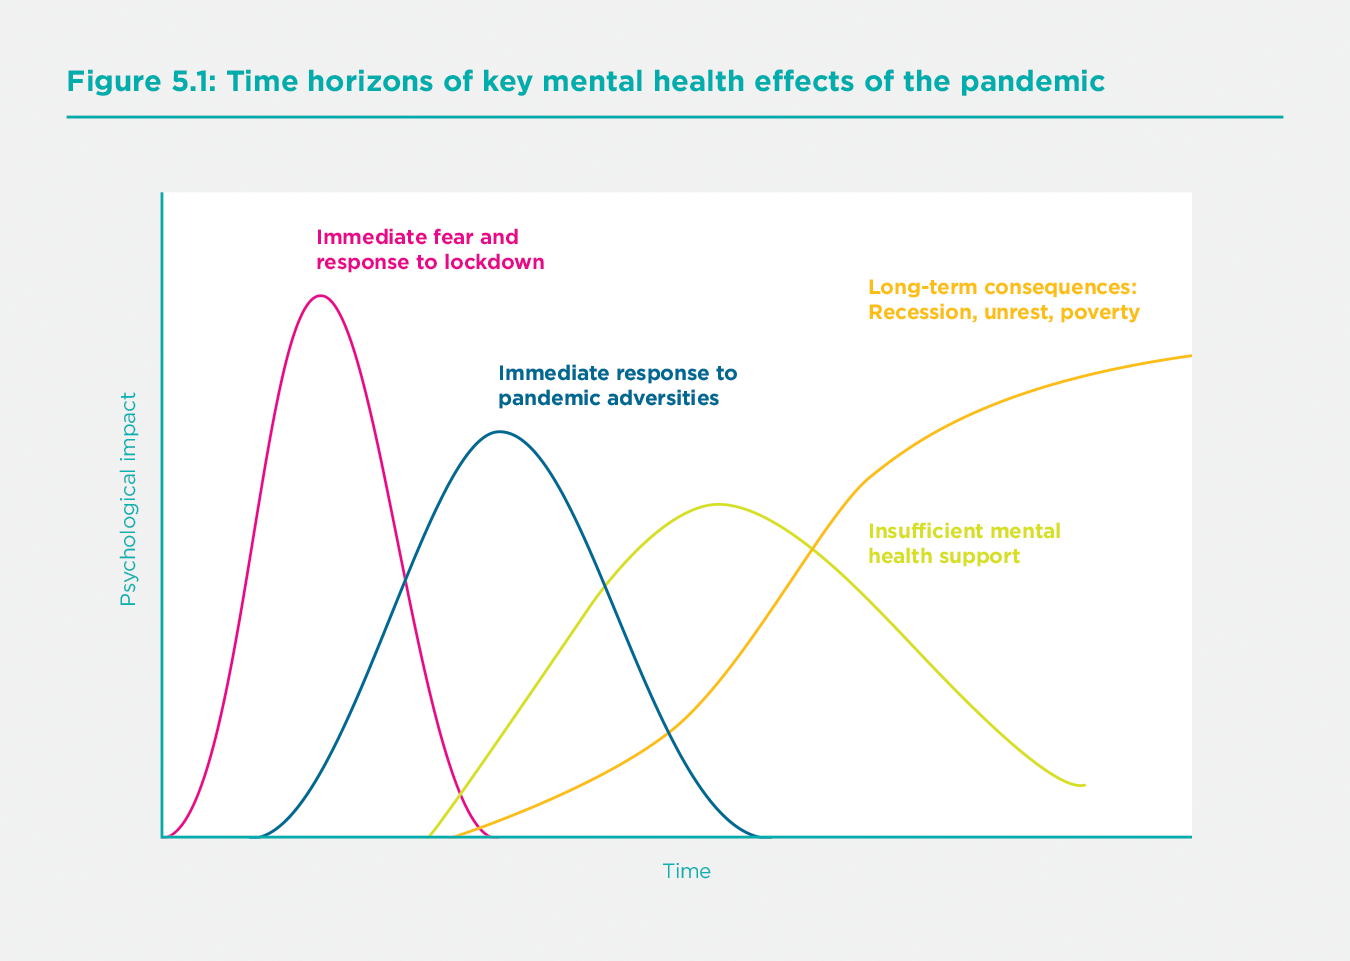 Figure 5.1 Time horizons of key mental health effects of the pandemic